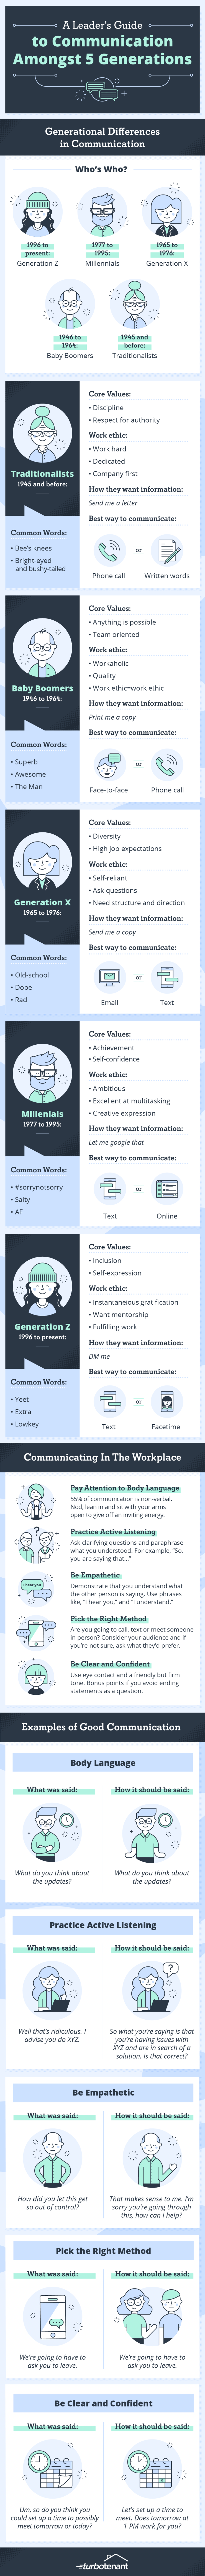 How Boomers and Millennials Should Communicate